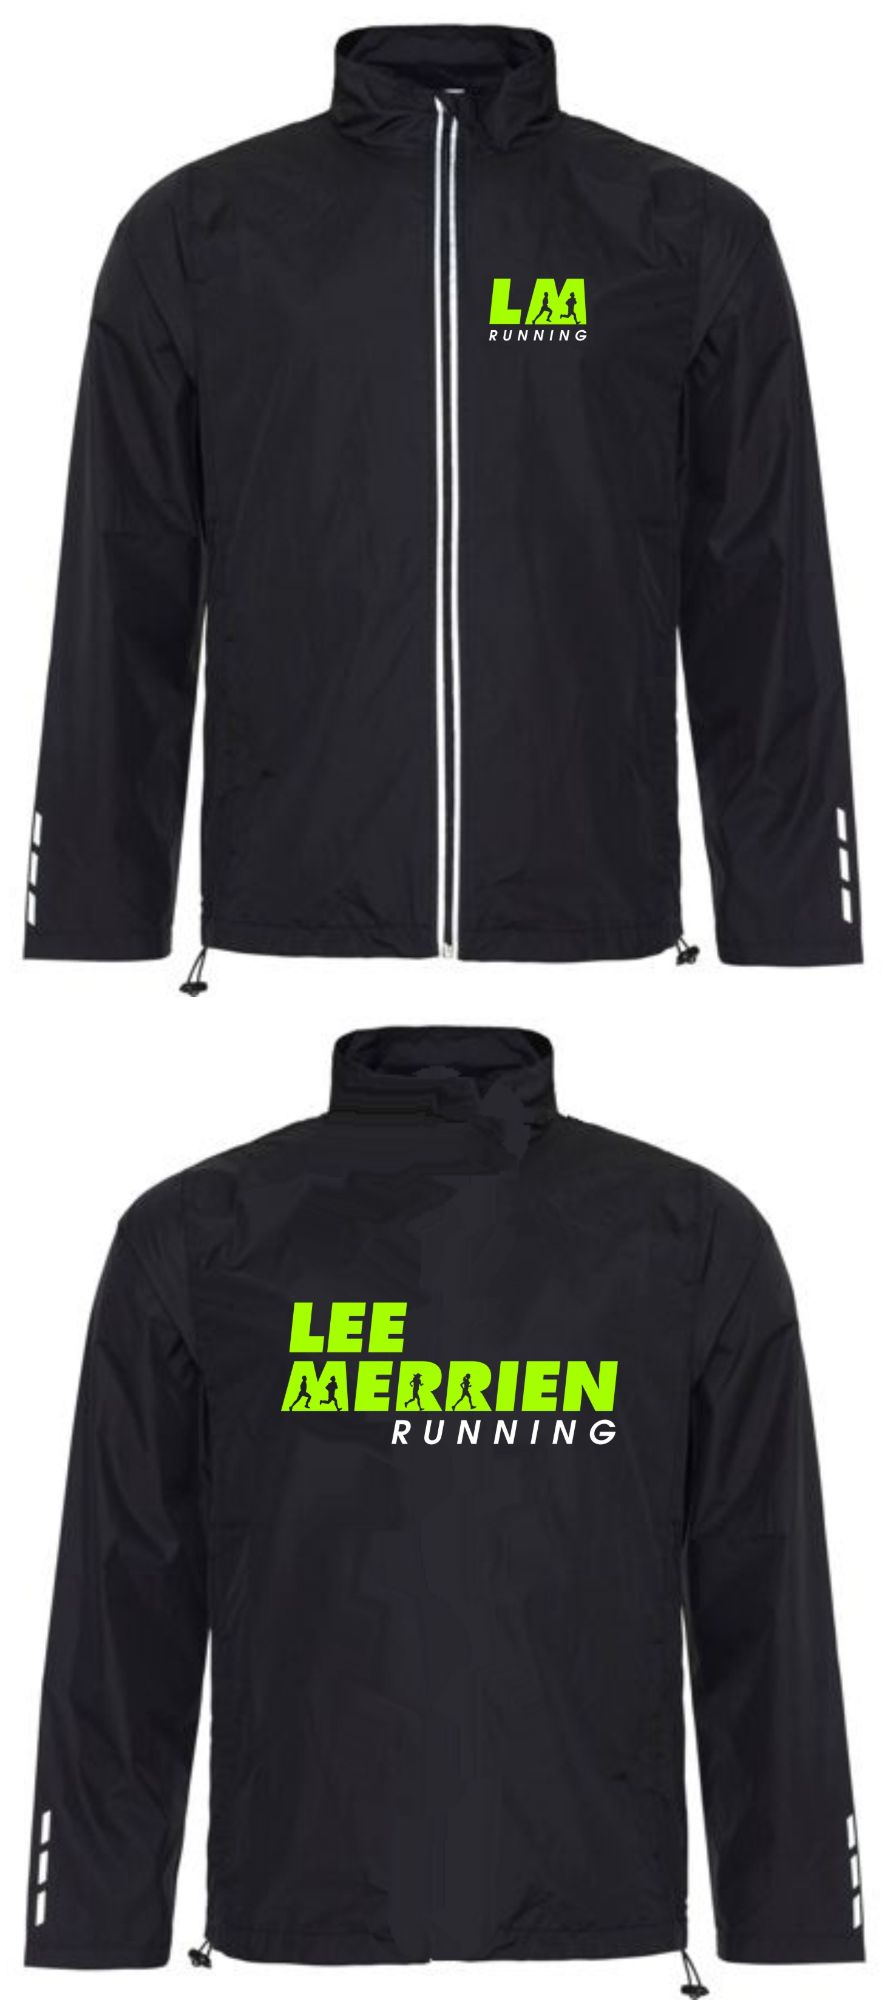 Lee Merrien Running Lightweight Showerproof Jacket (Unisex)